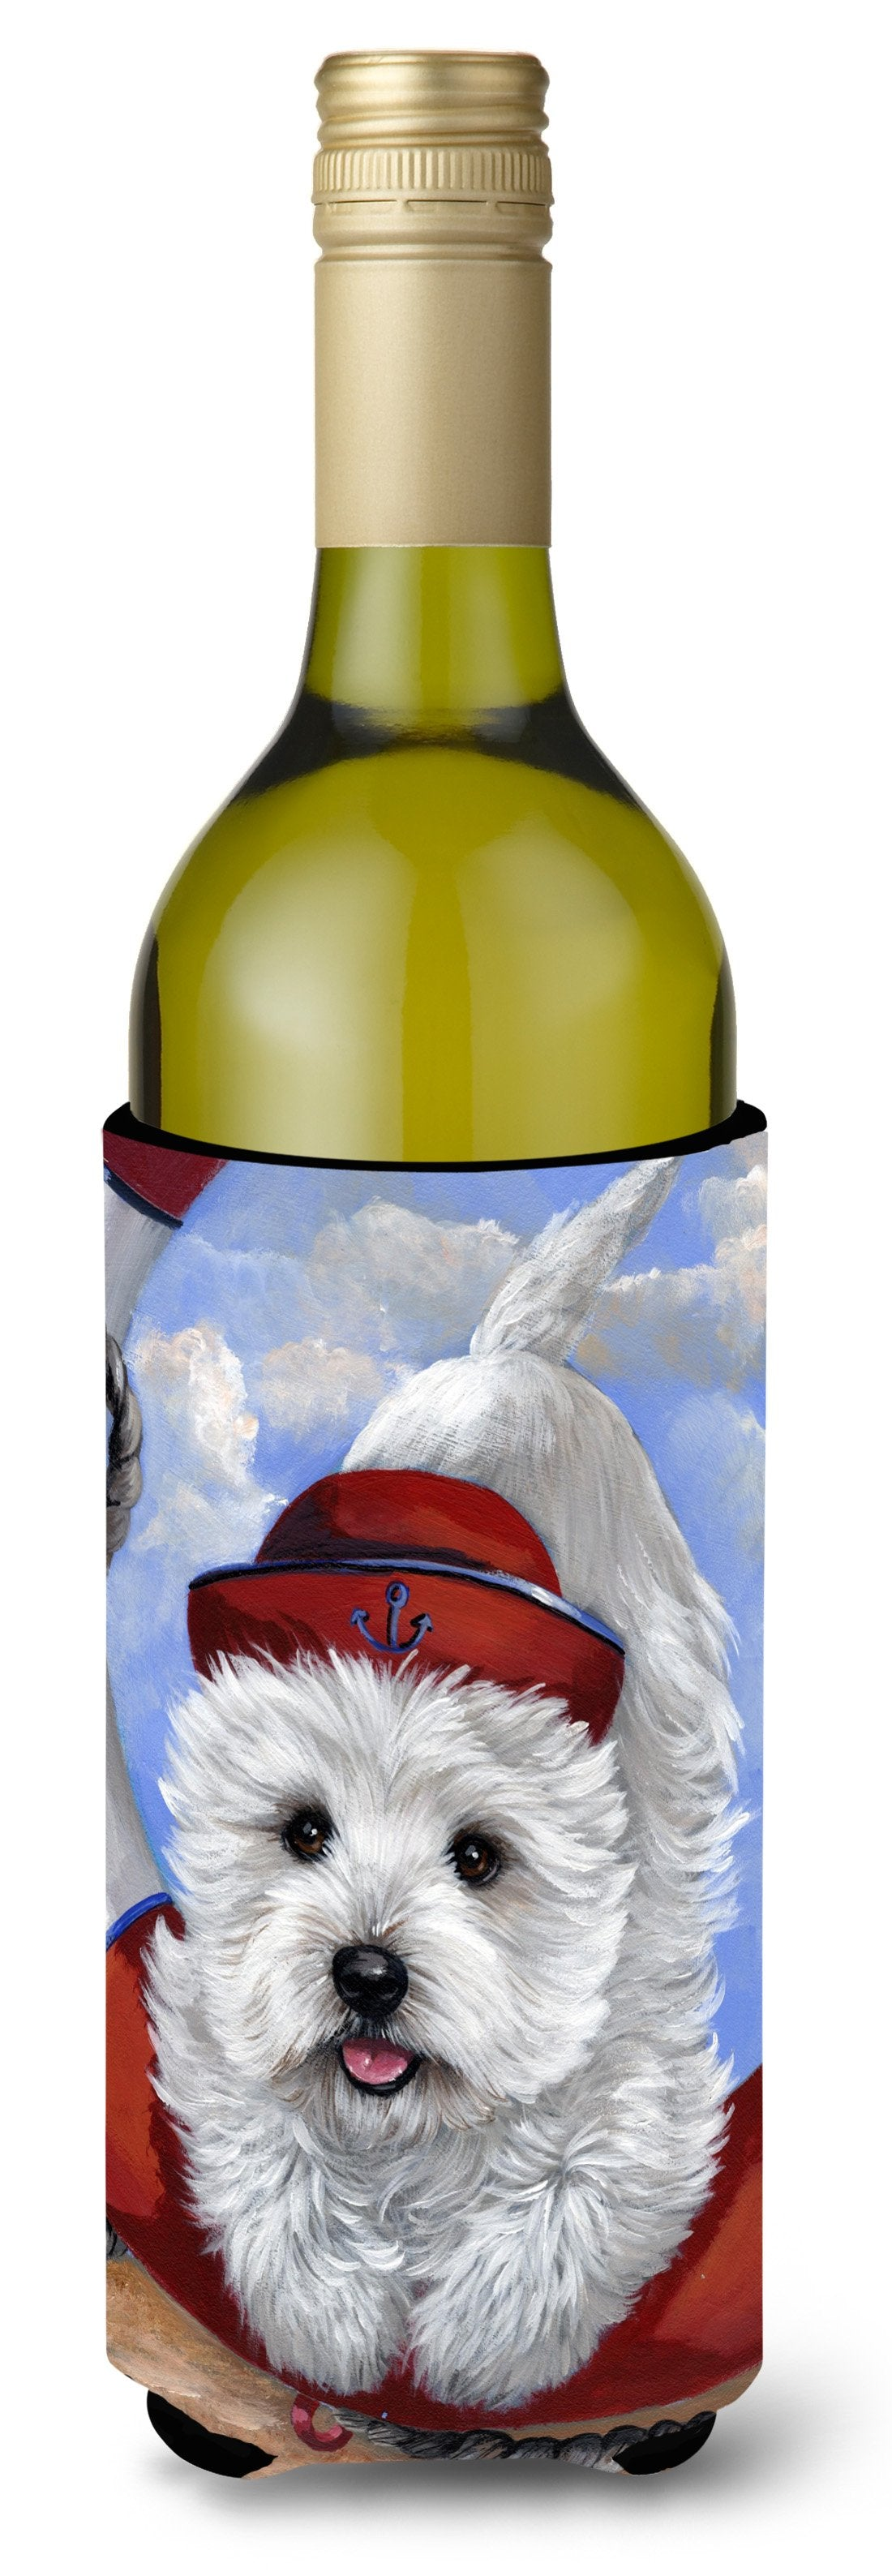 Westie Ahoy Sailor Wine Bottle Hugger PPP3197LITERK by Caroline's Treasures